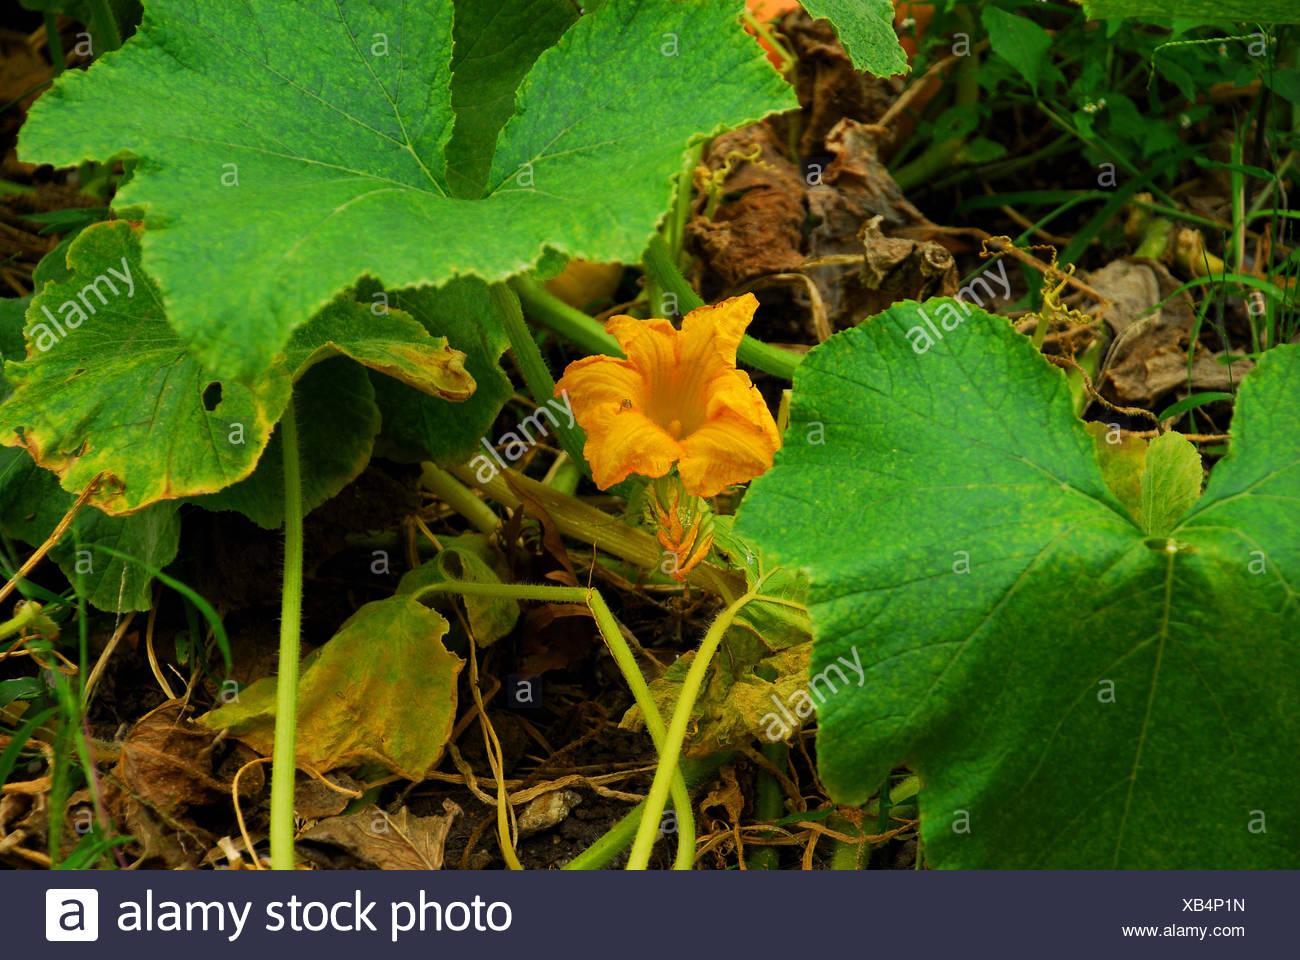 Yellow bell shaped flower stock photos yellow bell shaped flower flower plant bell shaped yellow glass chalice tumbler flower plant bloom stock image mightylinksfo Images